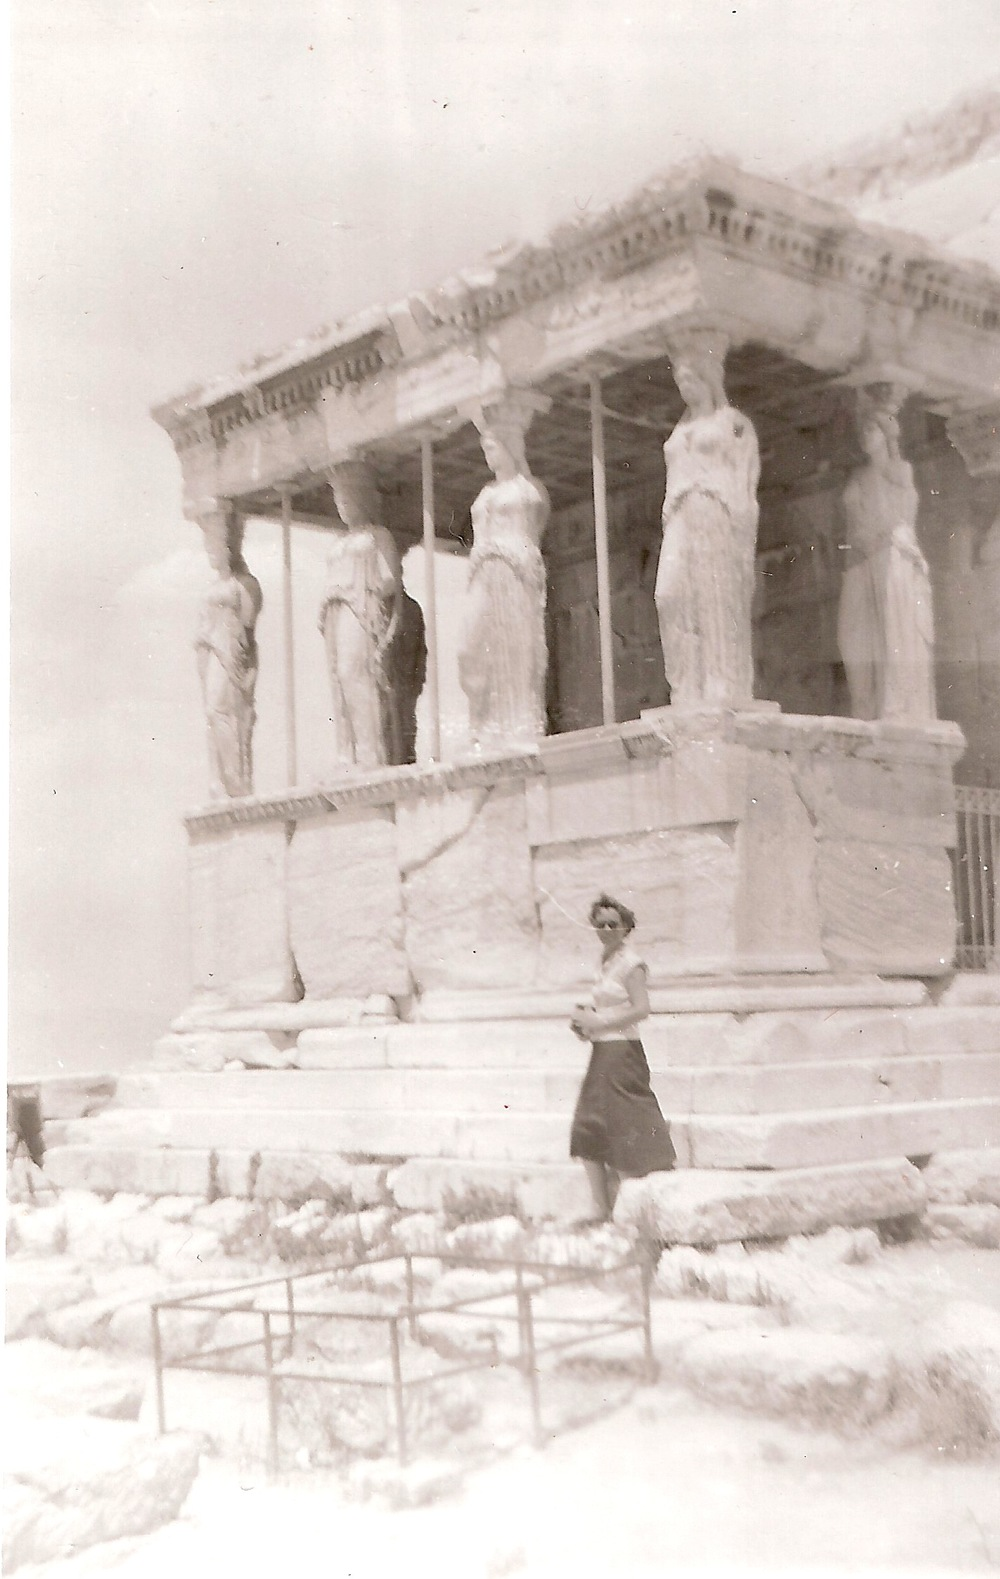 My grandmother's certainty, caryatid-like, could hold up the roof of the world. Here she is some sixty years ago, on her first trip abroad, where she clearly absorbed ancient values of metropolitanism.